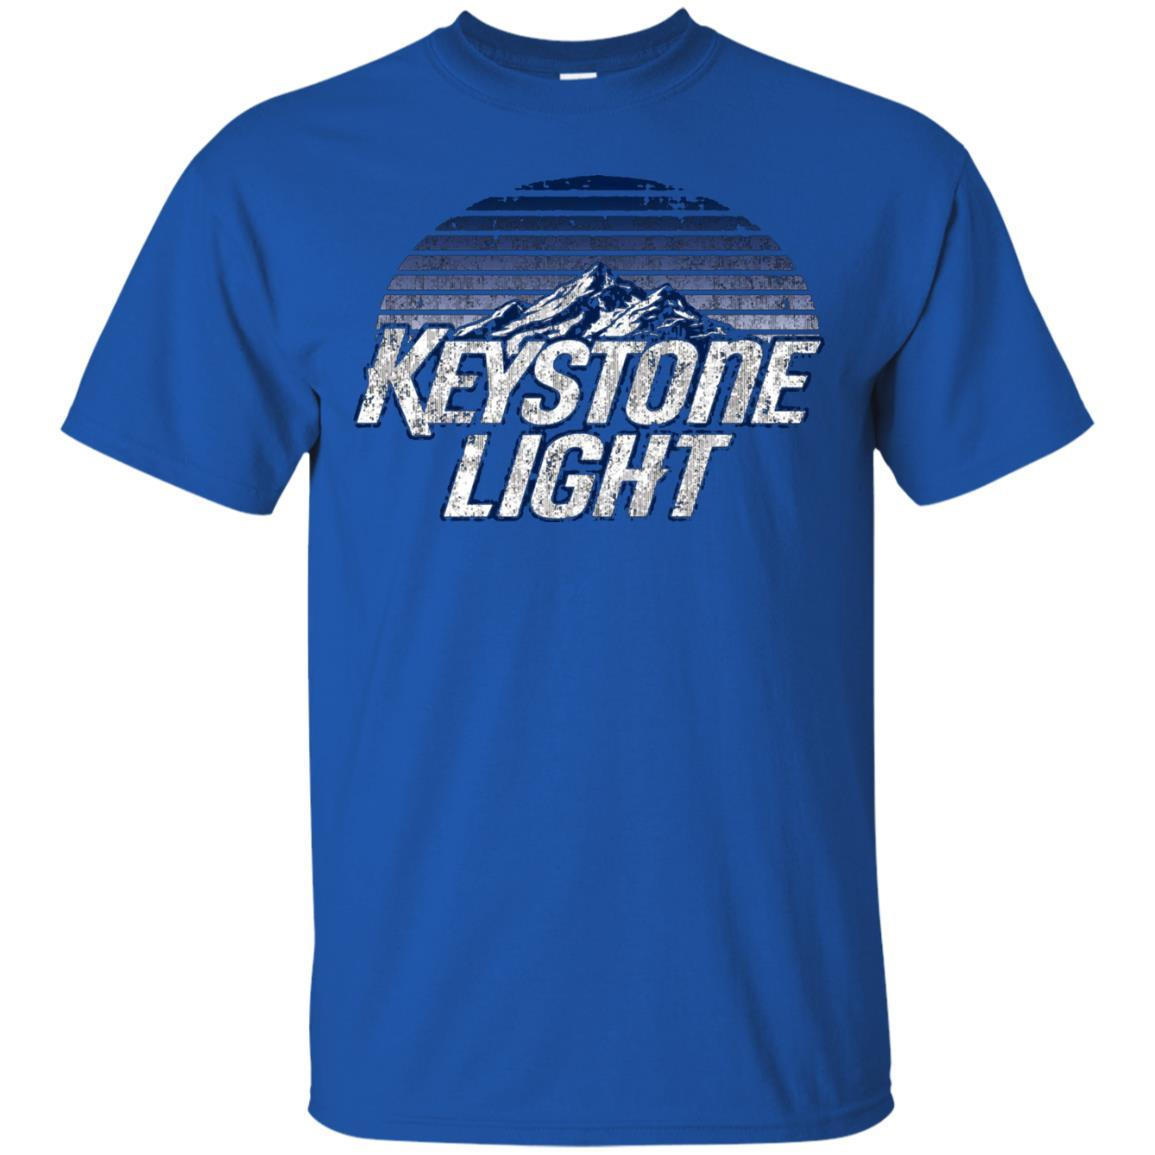 Keystone Light Beer Classic Look T-Shirt Style / Color / Size